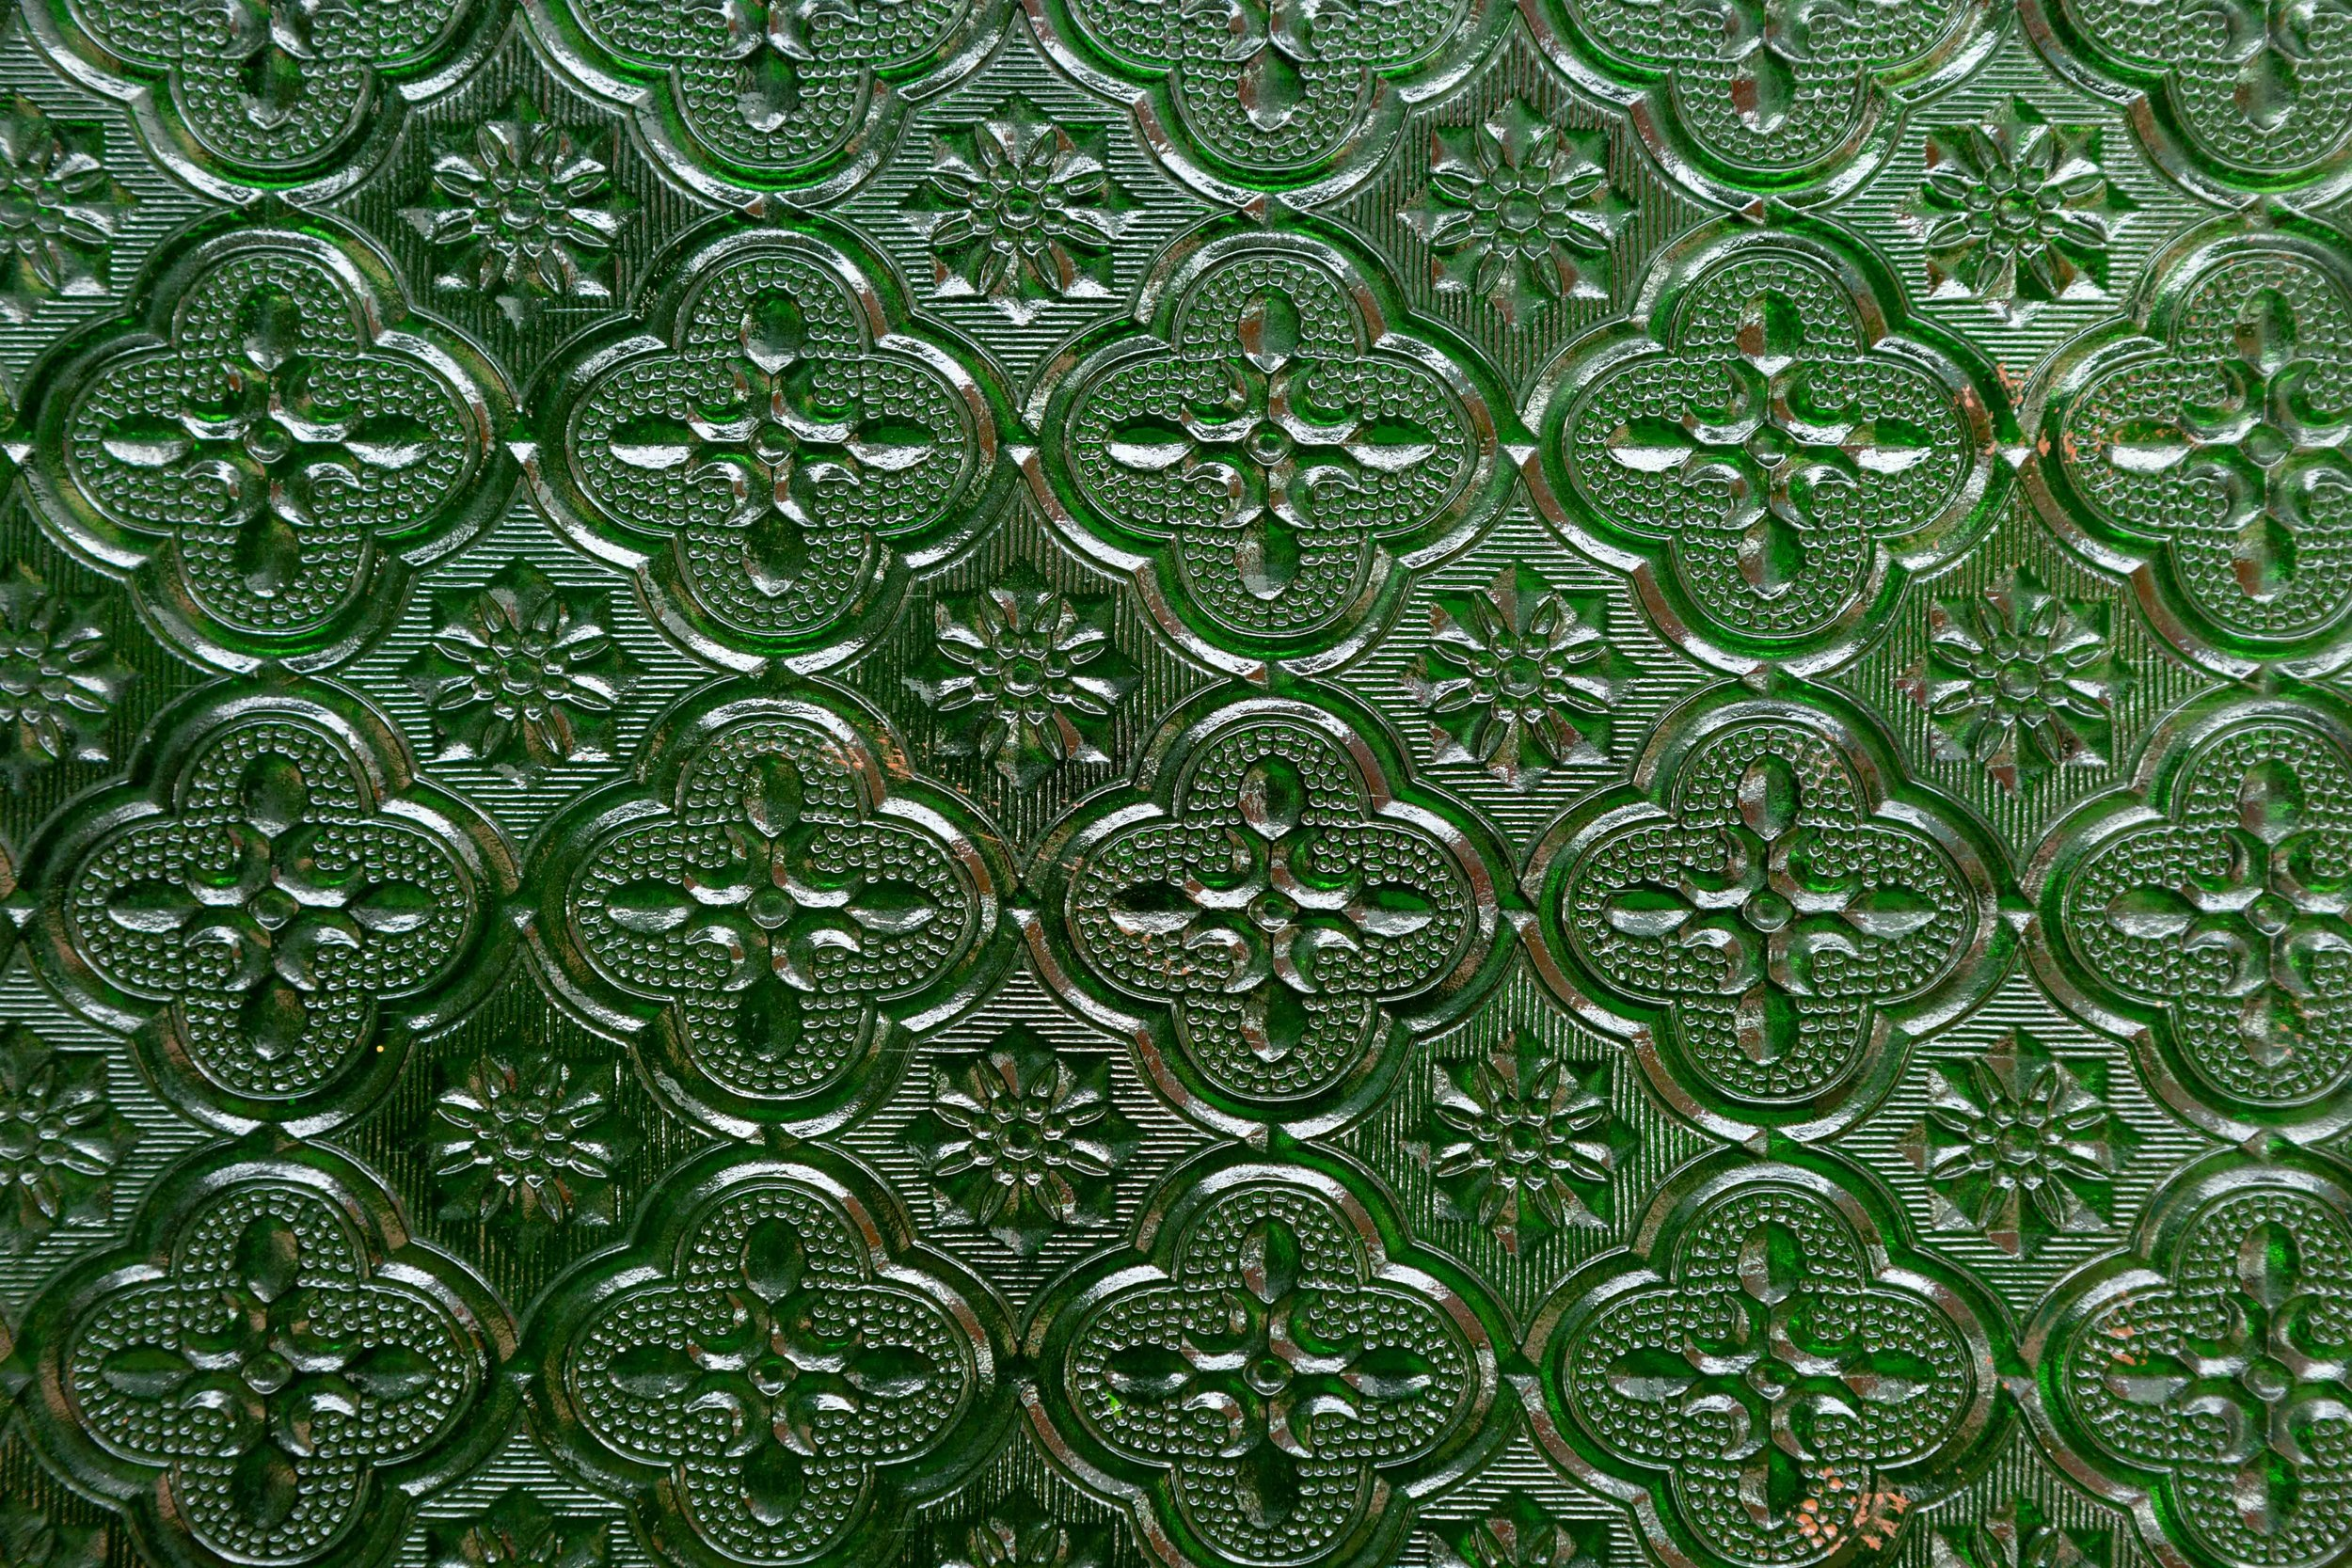 Patterns of Emerald Hill 191001 14, image by Andrew Campbell Nelson.jpg